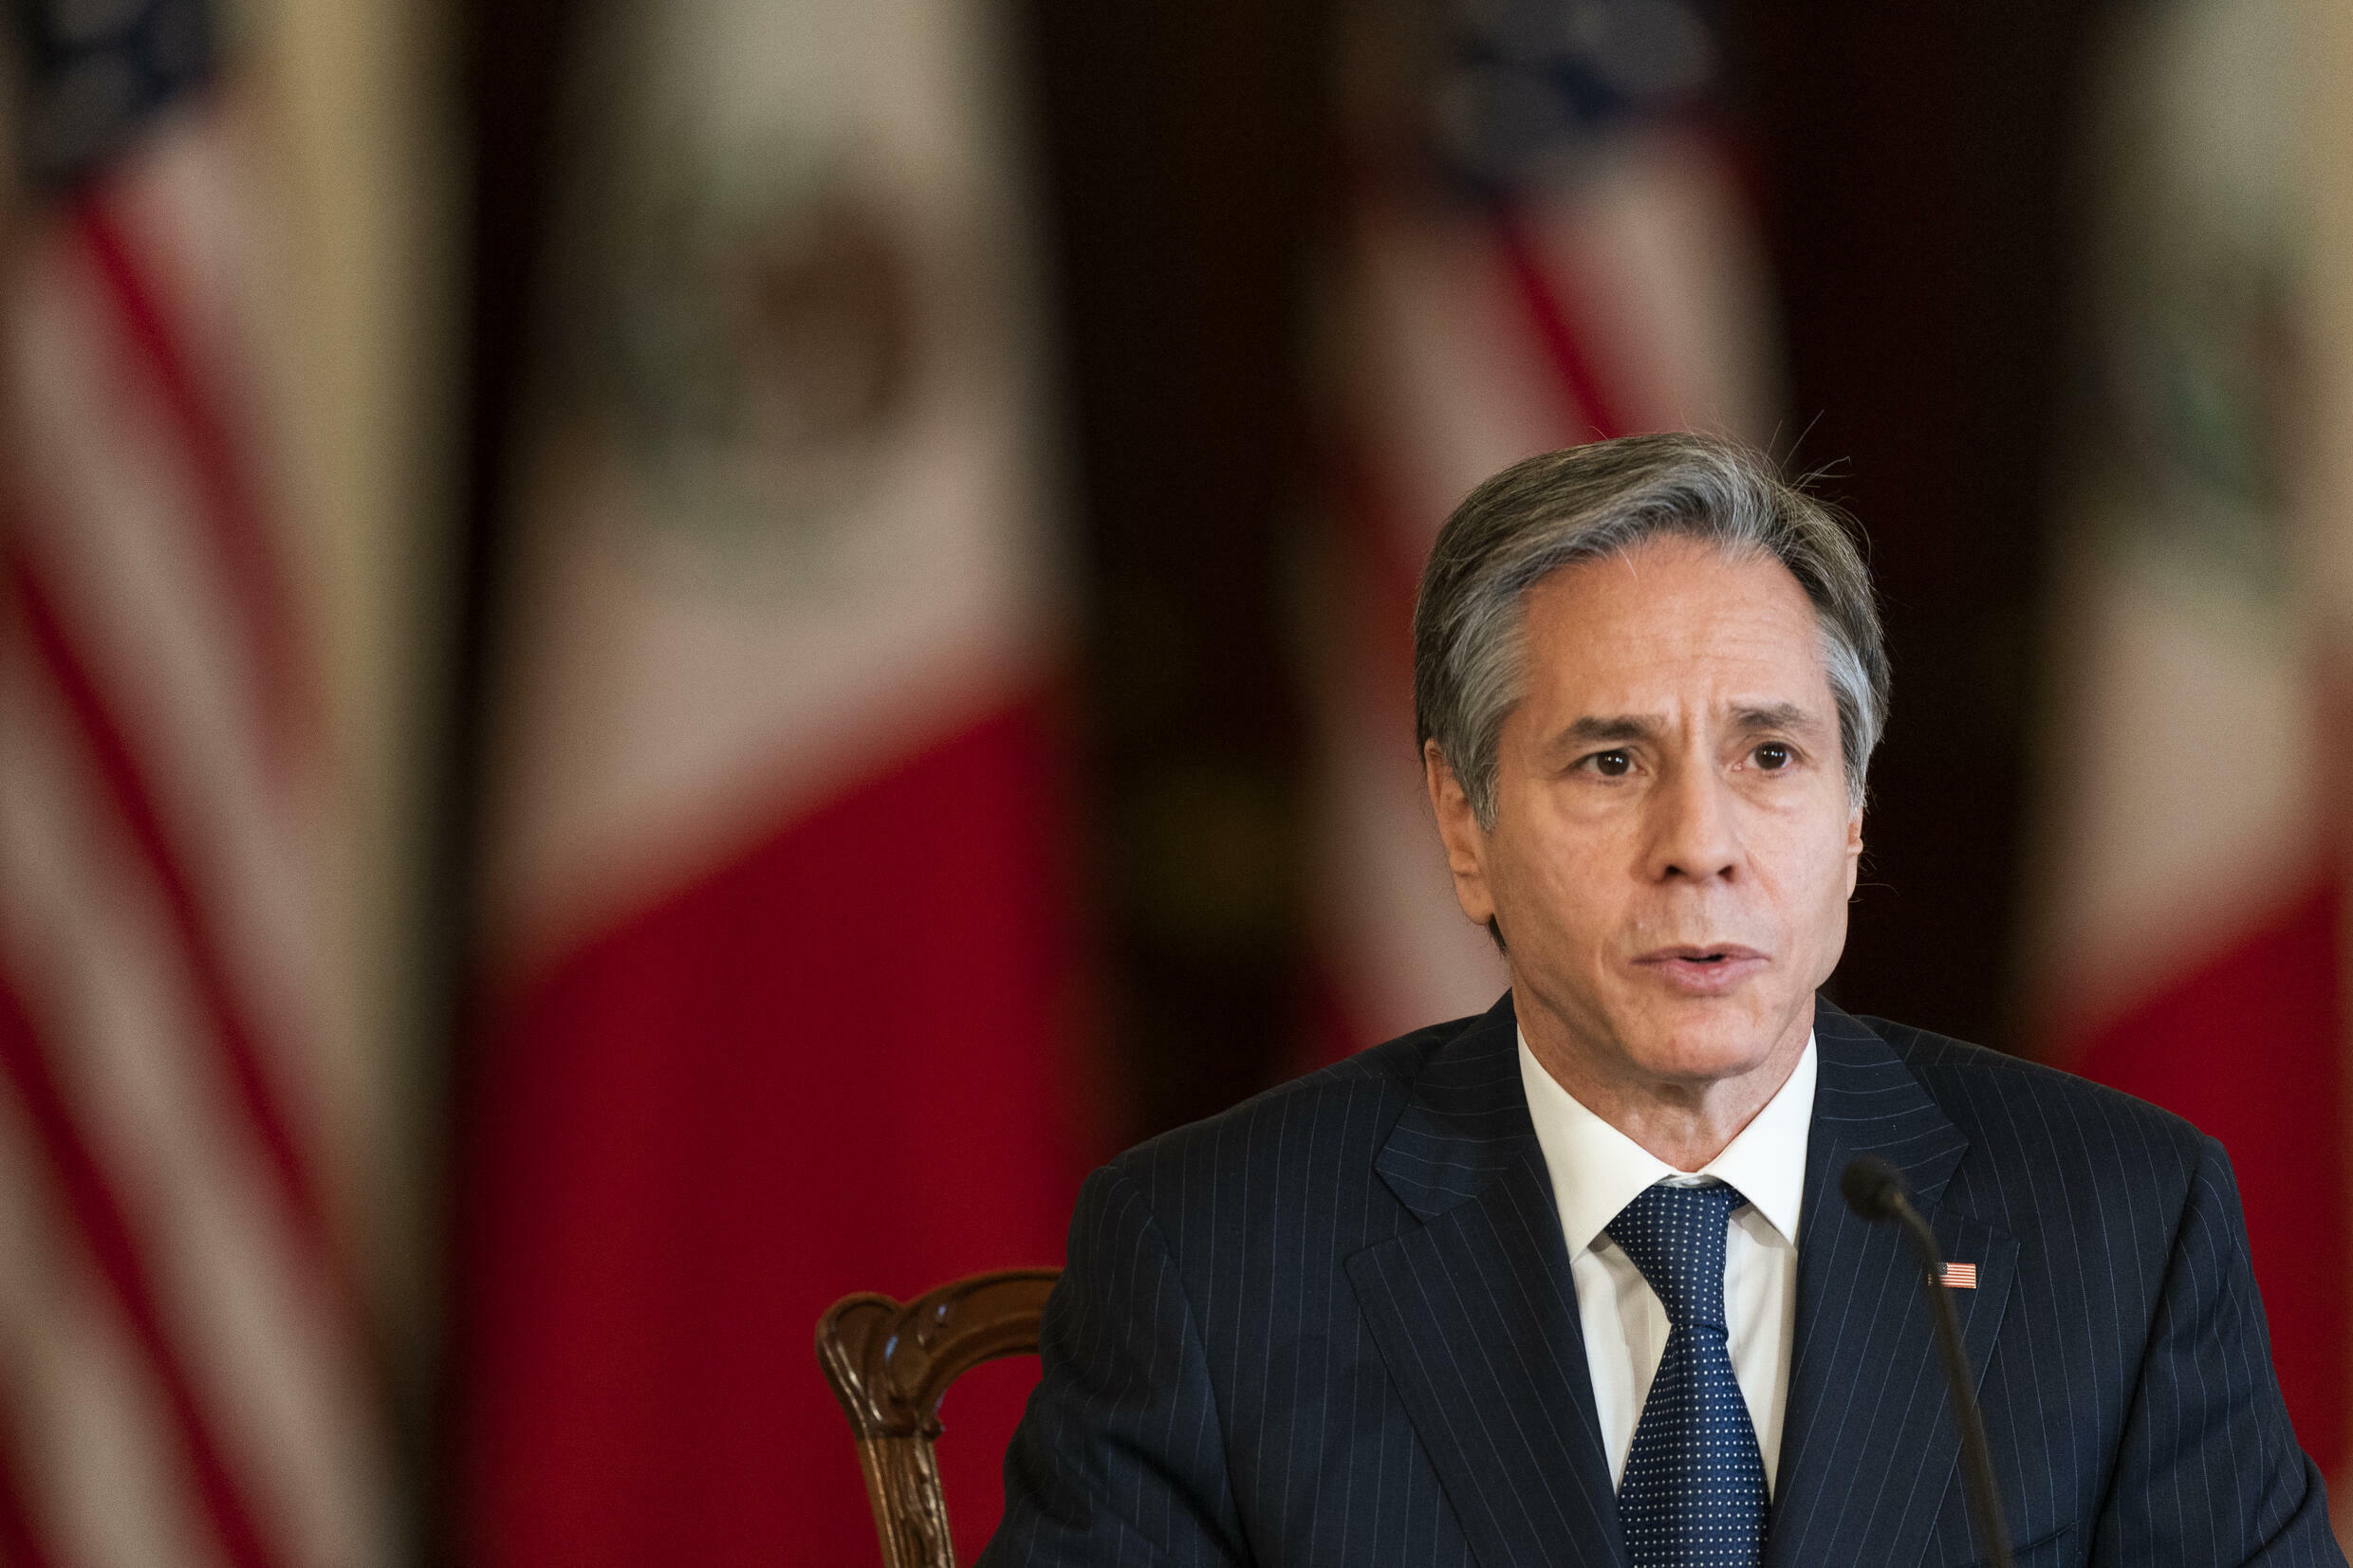 US Secretary of State Antony Blinken is making his first visit to Mexico as the top US diplomat